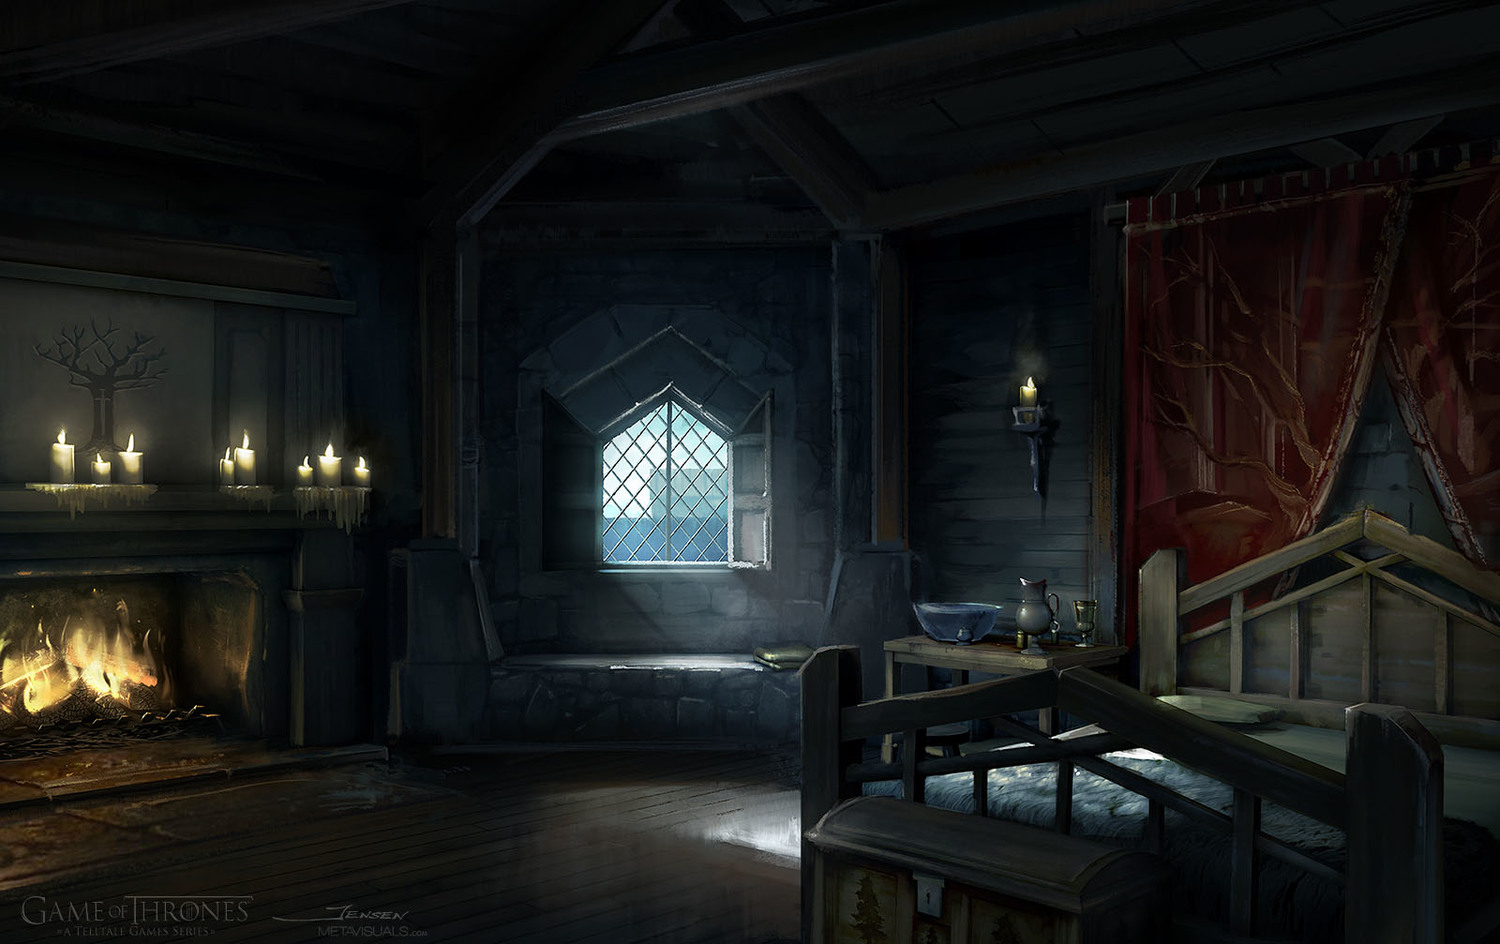 Patrick Jensen - Game of Thrones, Lords Chamber